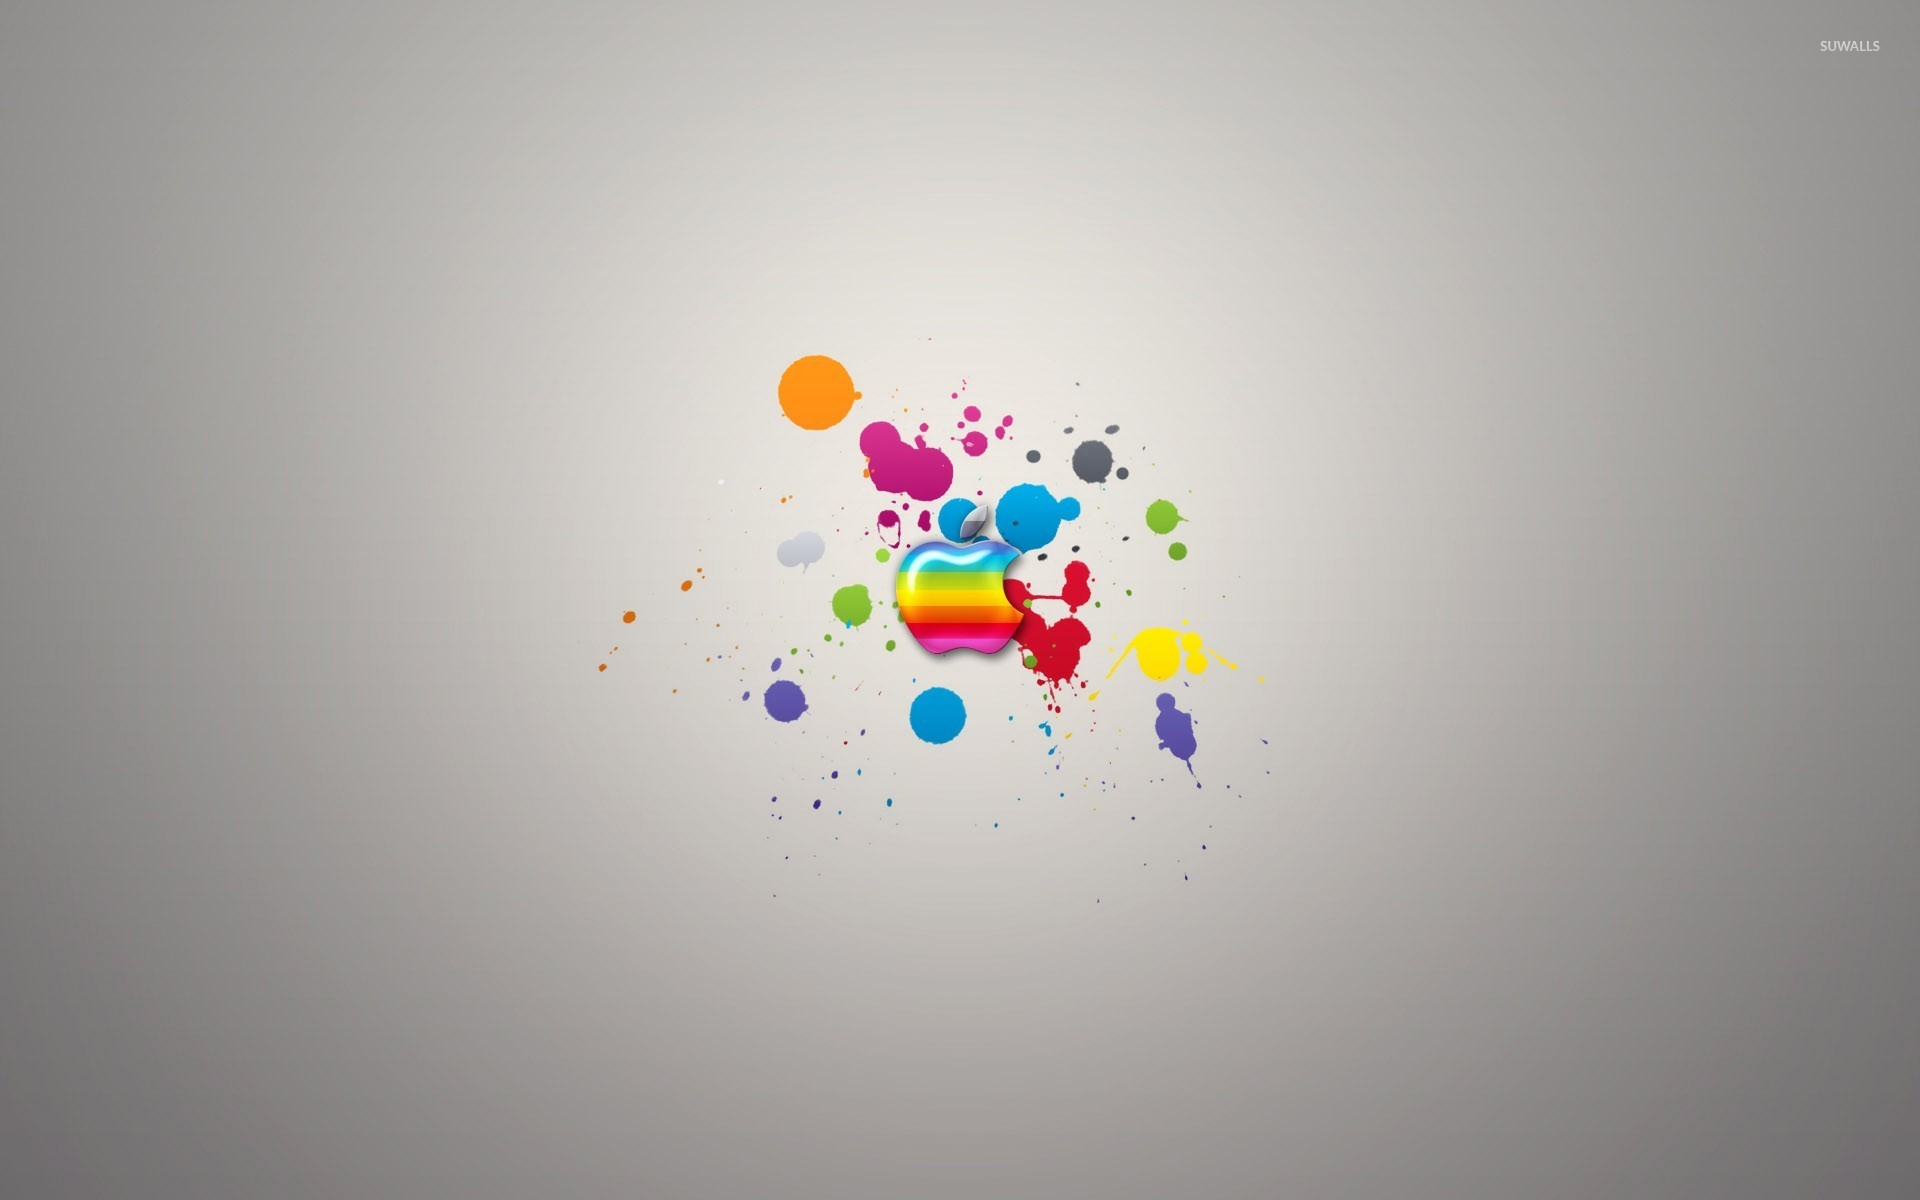 Colorful Apple On Paint Splash Wallpaper